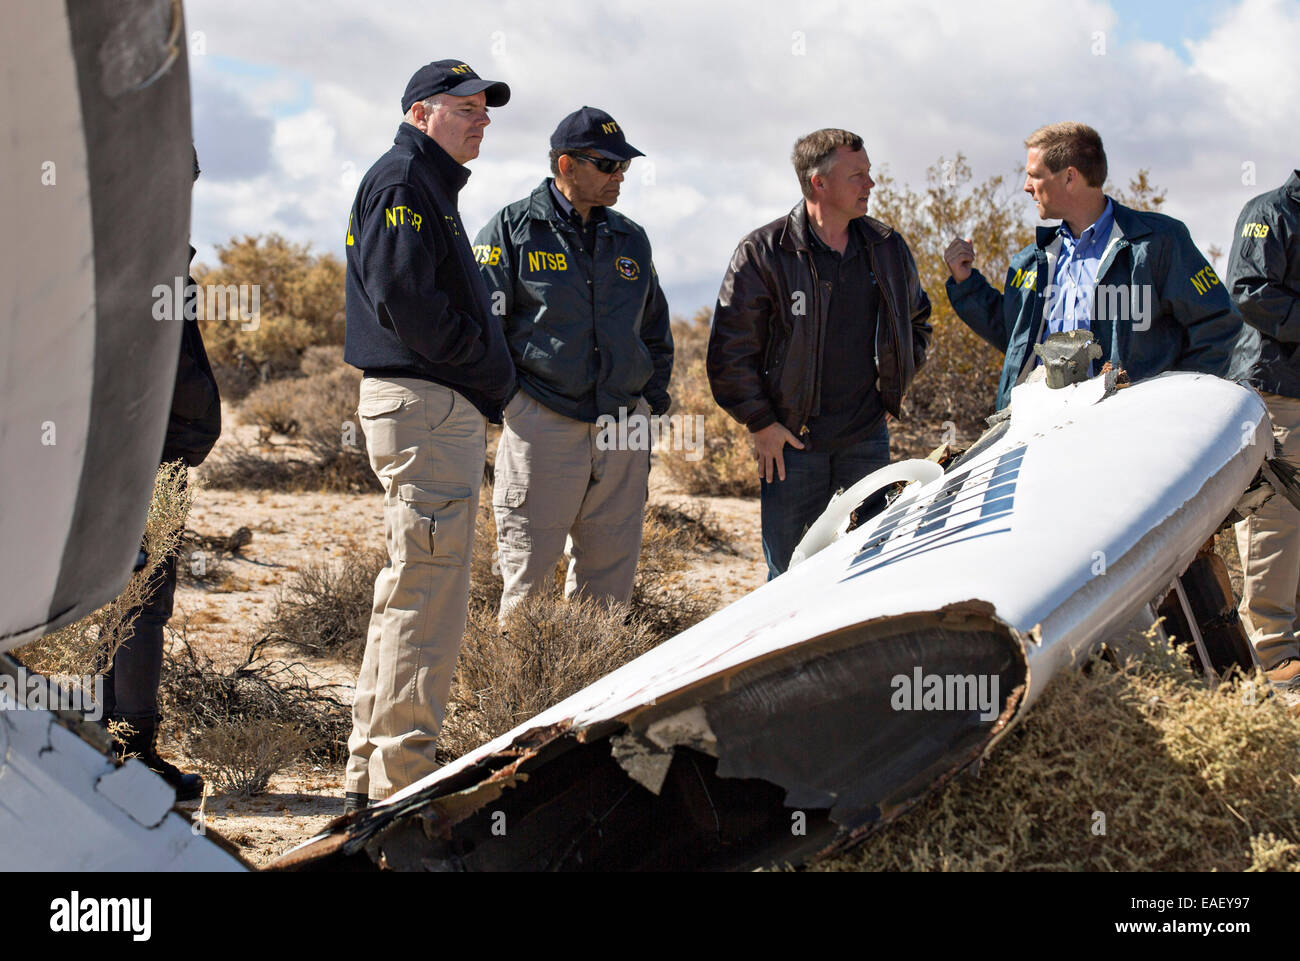 Christopher Hart, Acting Chairman of the National Transportation Safety Board, (center) listens as NTSB investigators - Stock Image